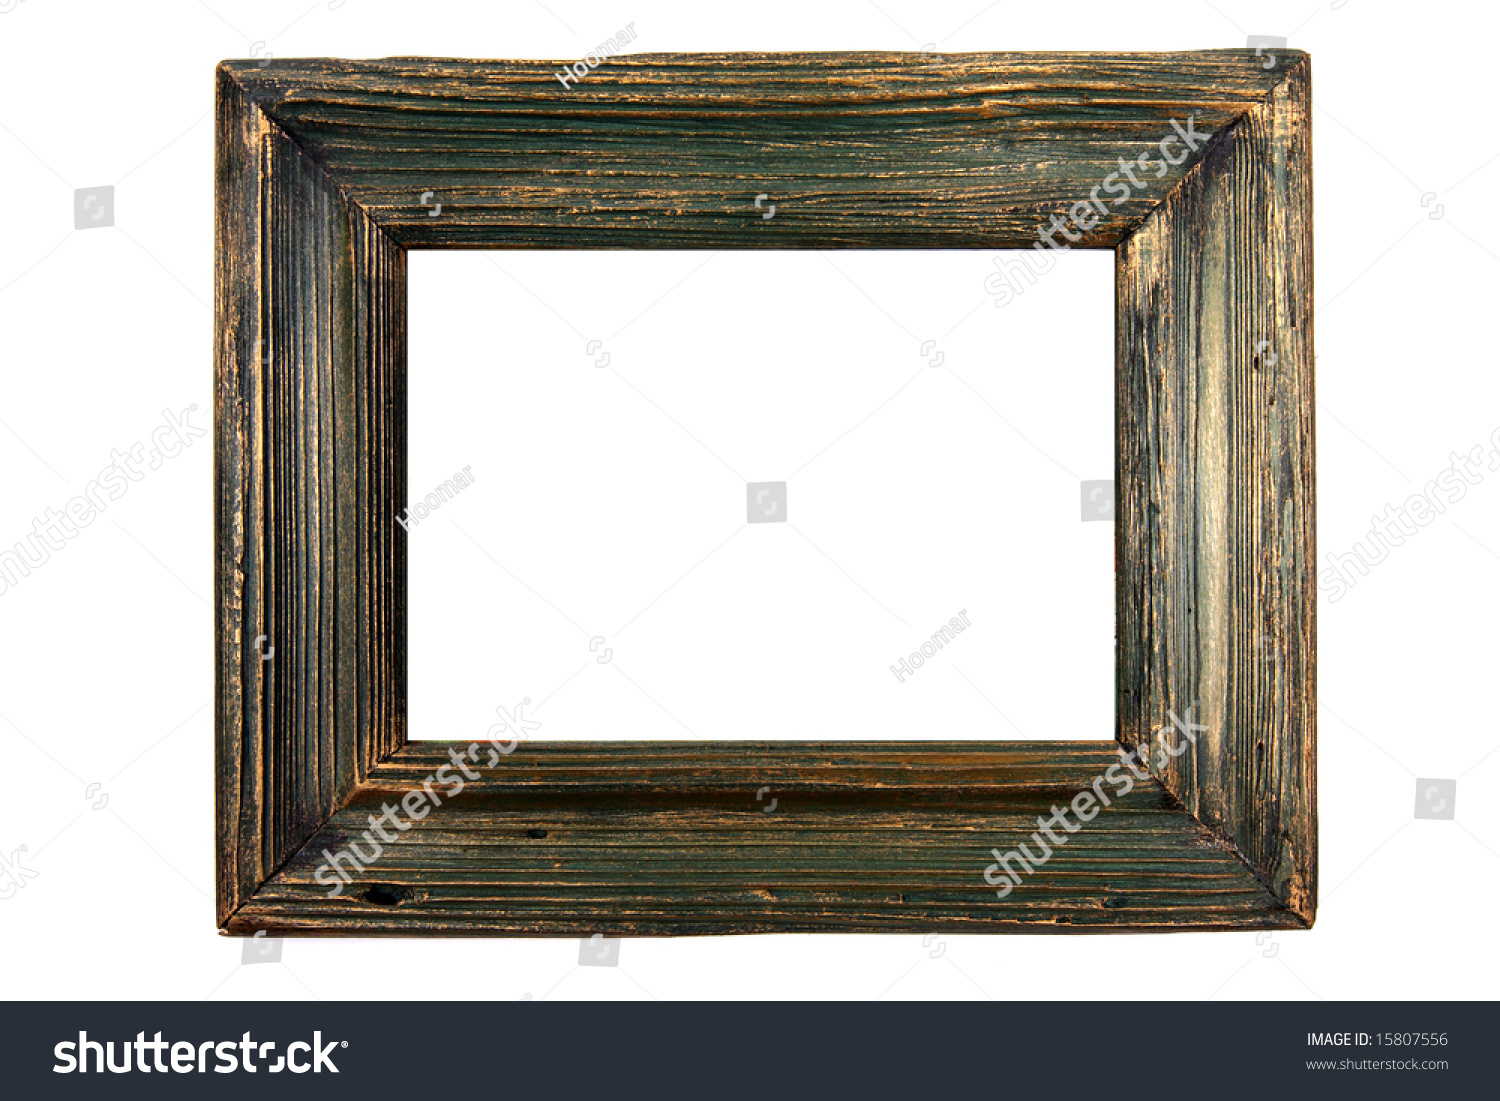 Old Wooden Frame Stock Photo 15807556 - Shutterstock